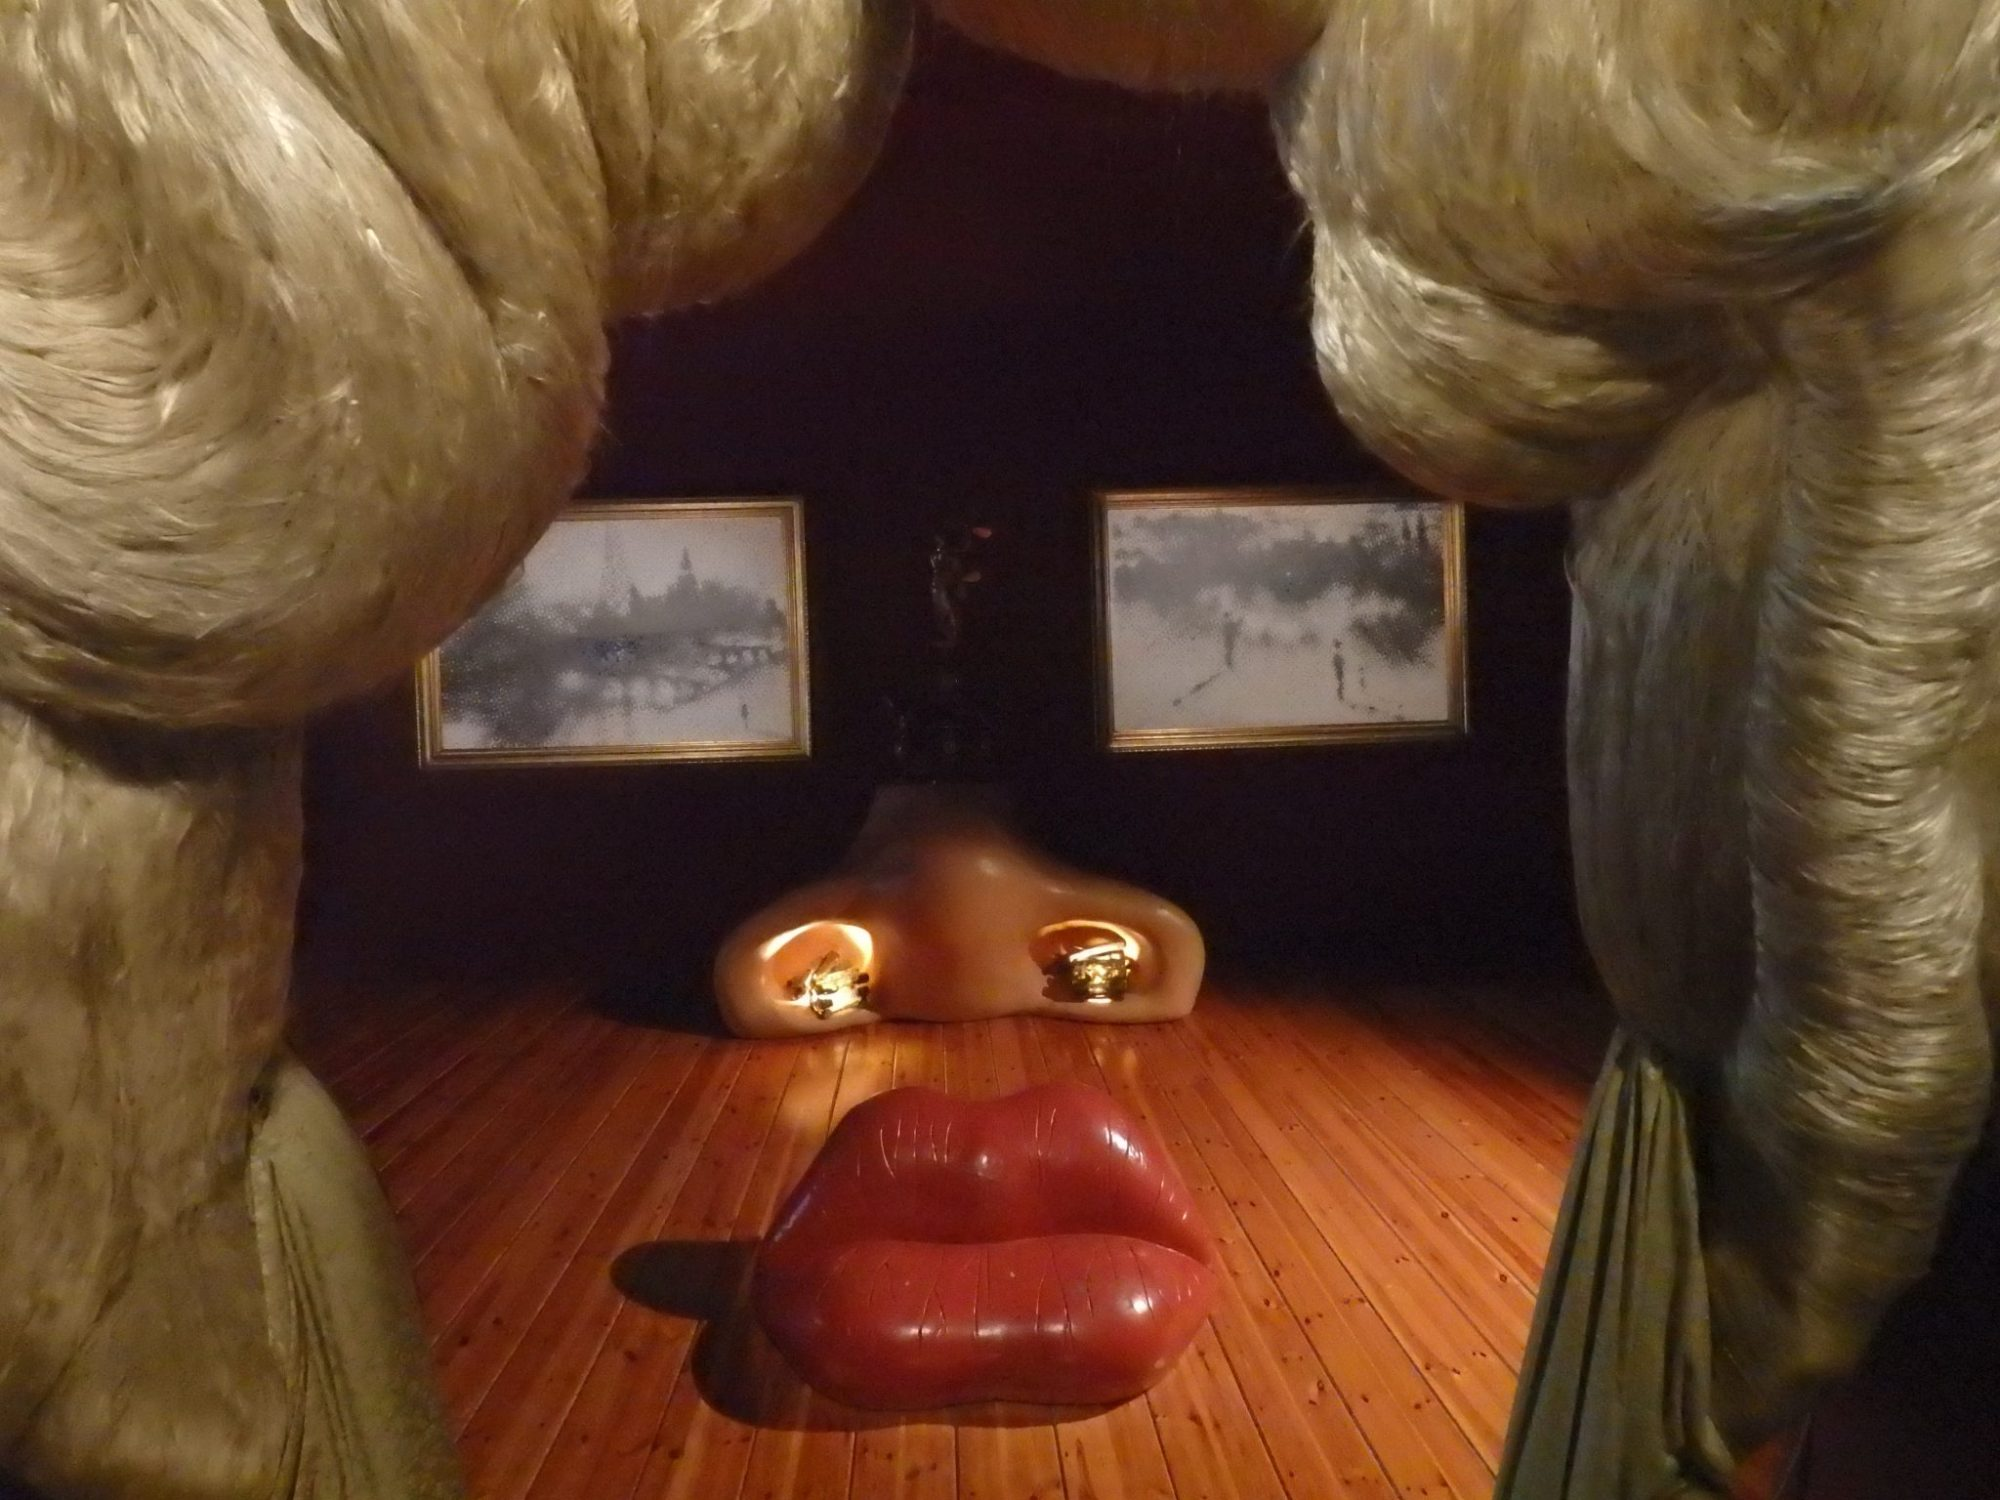 """The """"hair"""" fills the left and right sides of the photo. Ahead, on the floor is the lip-shaped sofa. Behind that, the shape of a nose, lit up from inside the nostrils. On the wall behind that: two horizontal paintings that are indistinct, but from this vantage point look like eyes."""